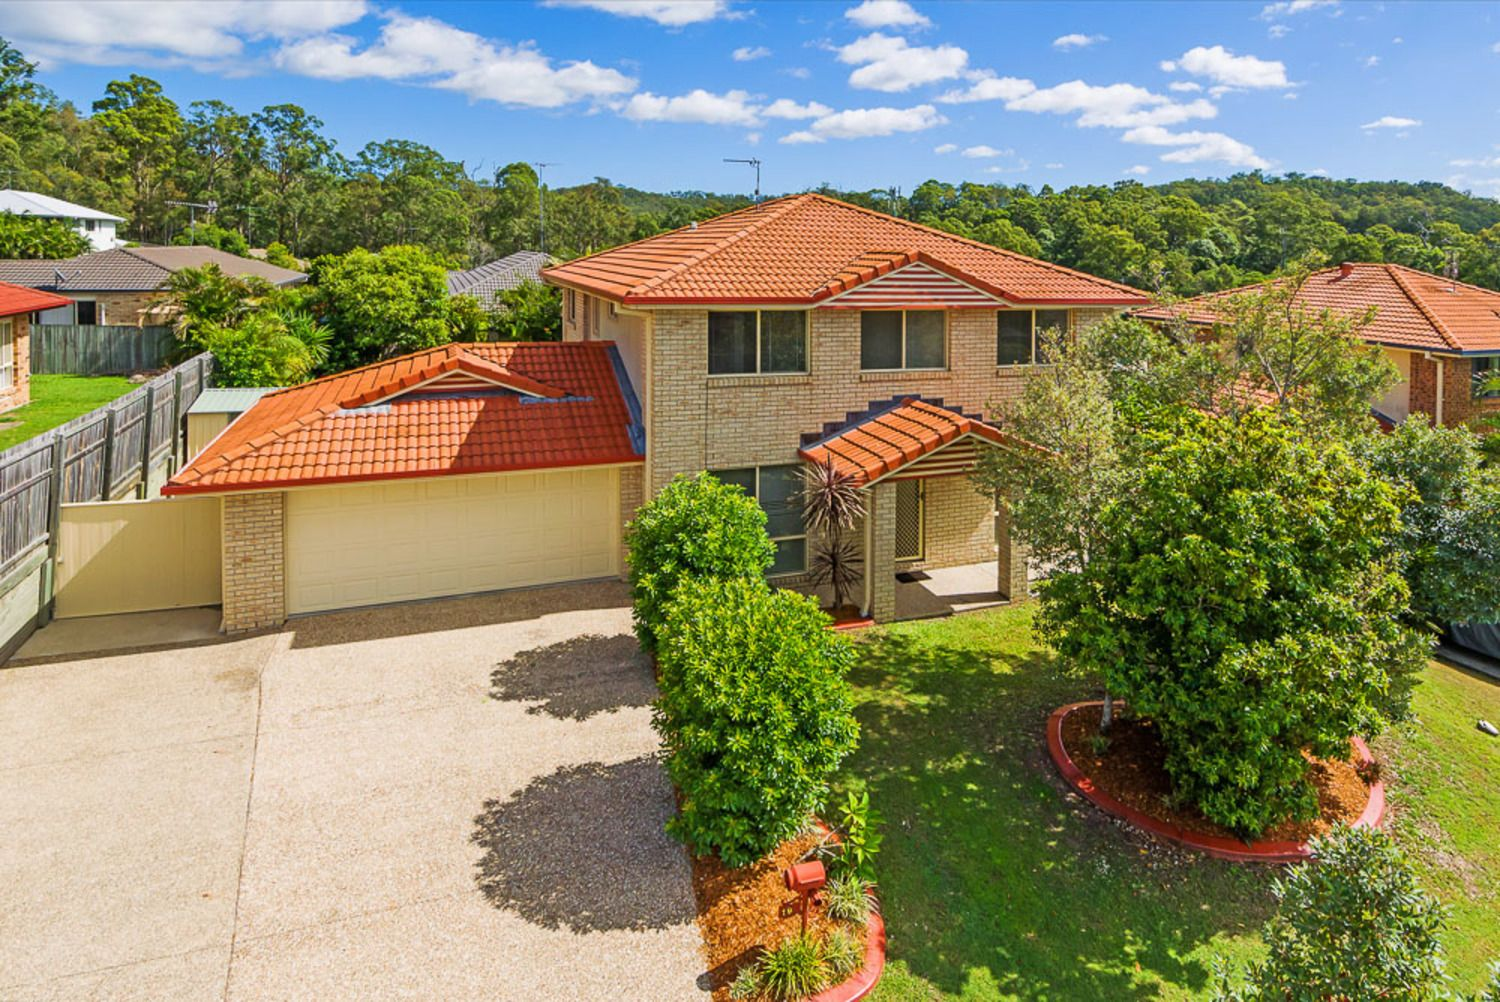 19 Bluetail Crescent, Upper Coomera QLD 4209, Image 0